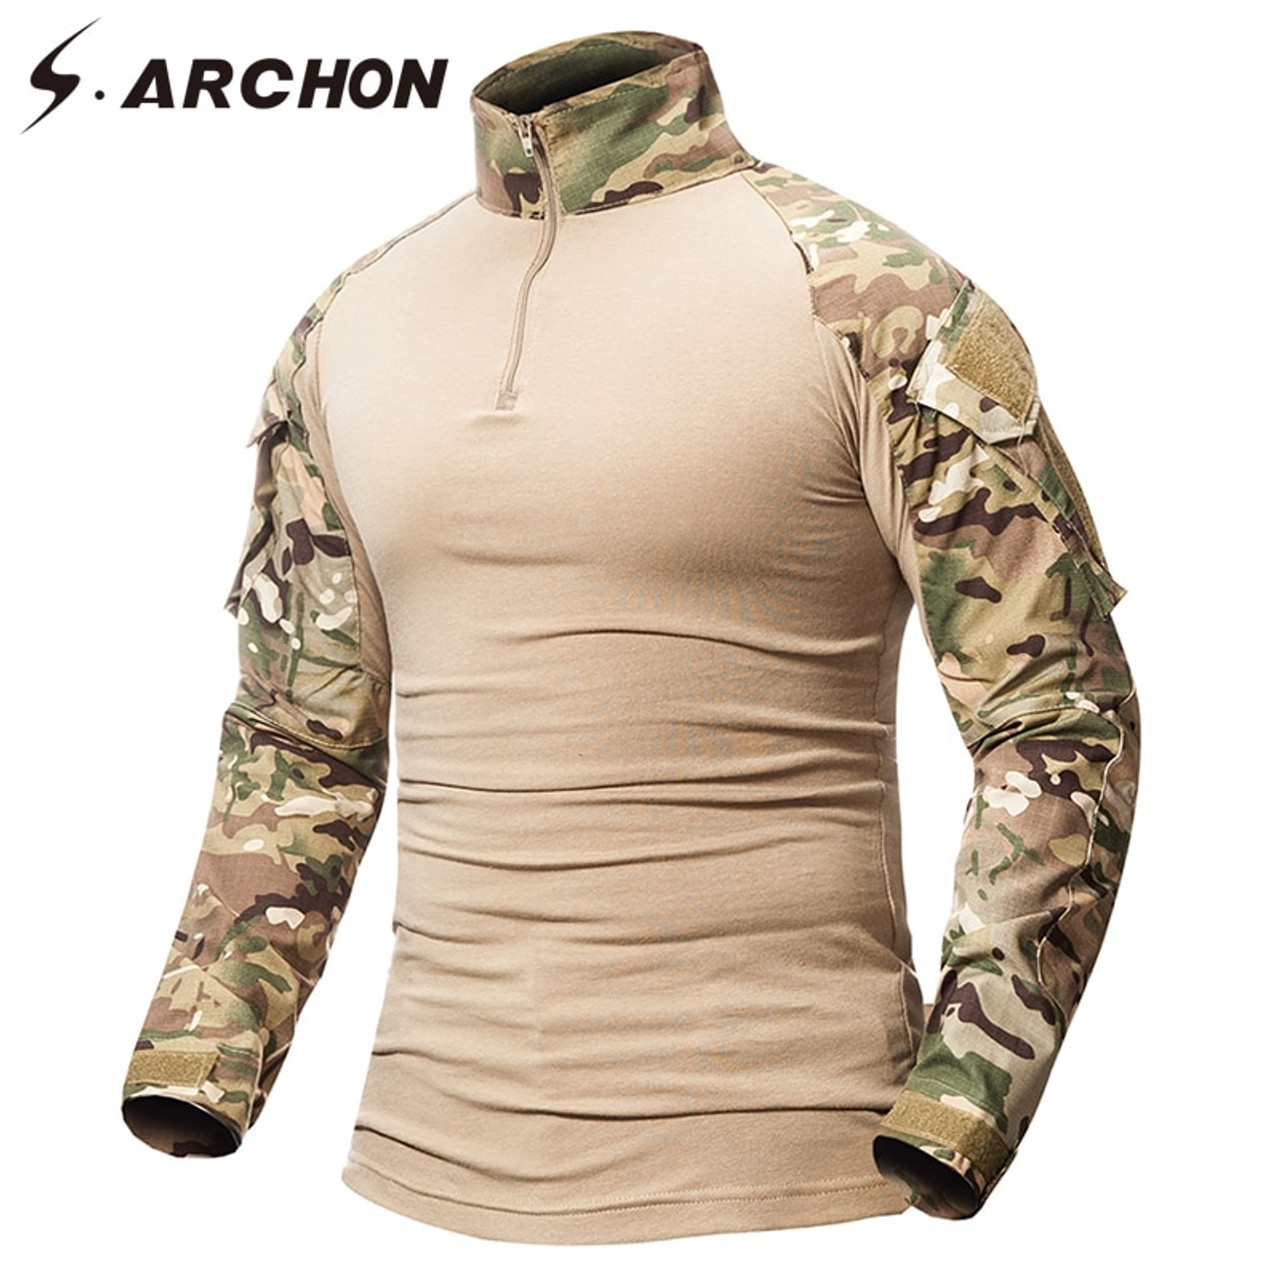 Mens Tactical Army T Shirt Airsoft Combat Military Long Sleeve Shirt Camouflage